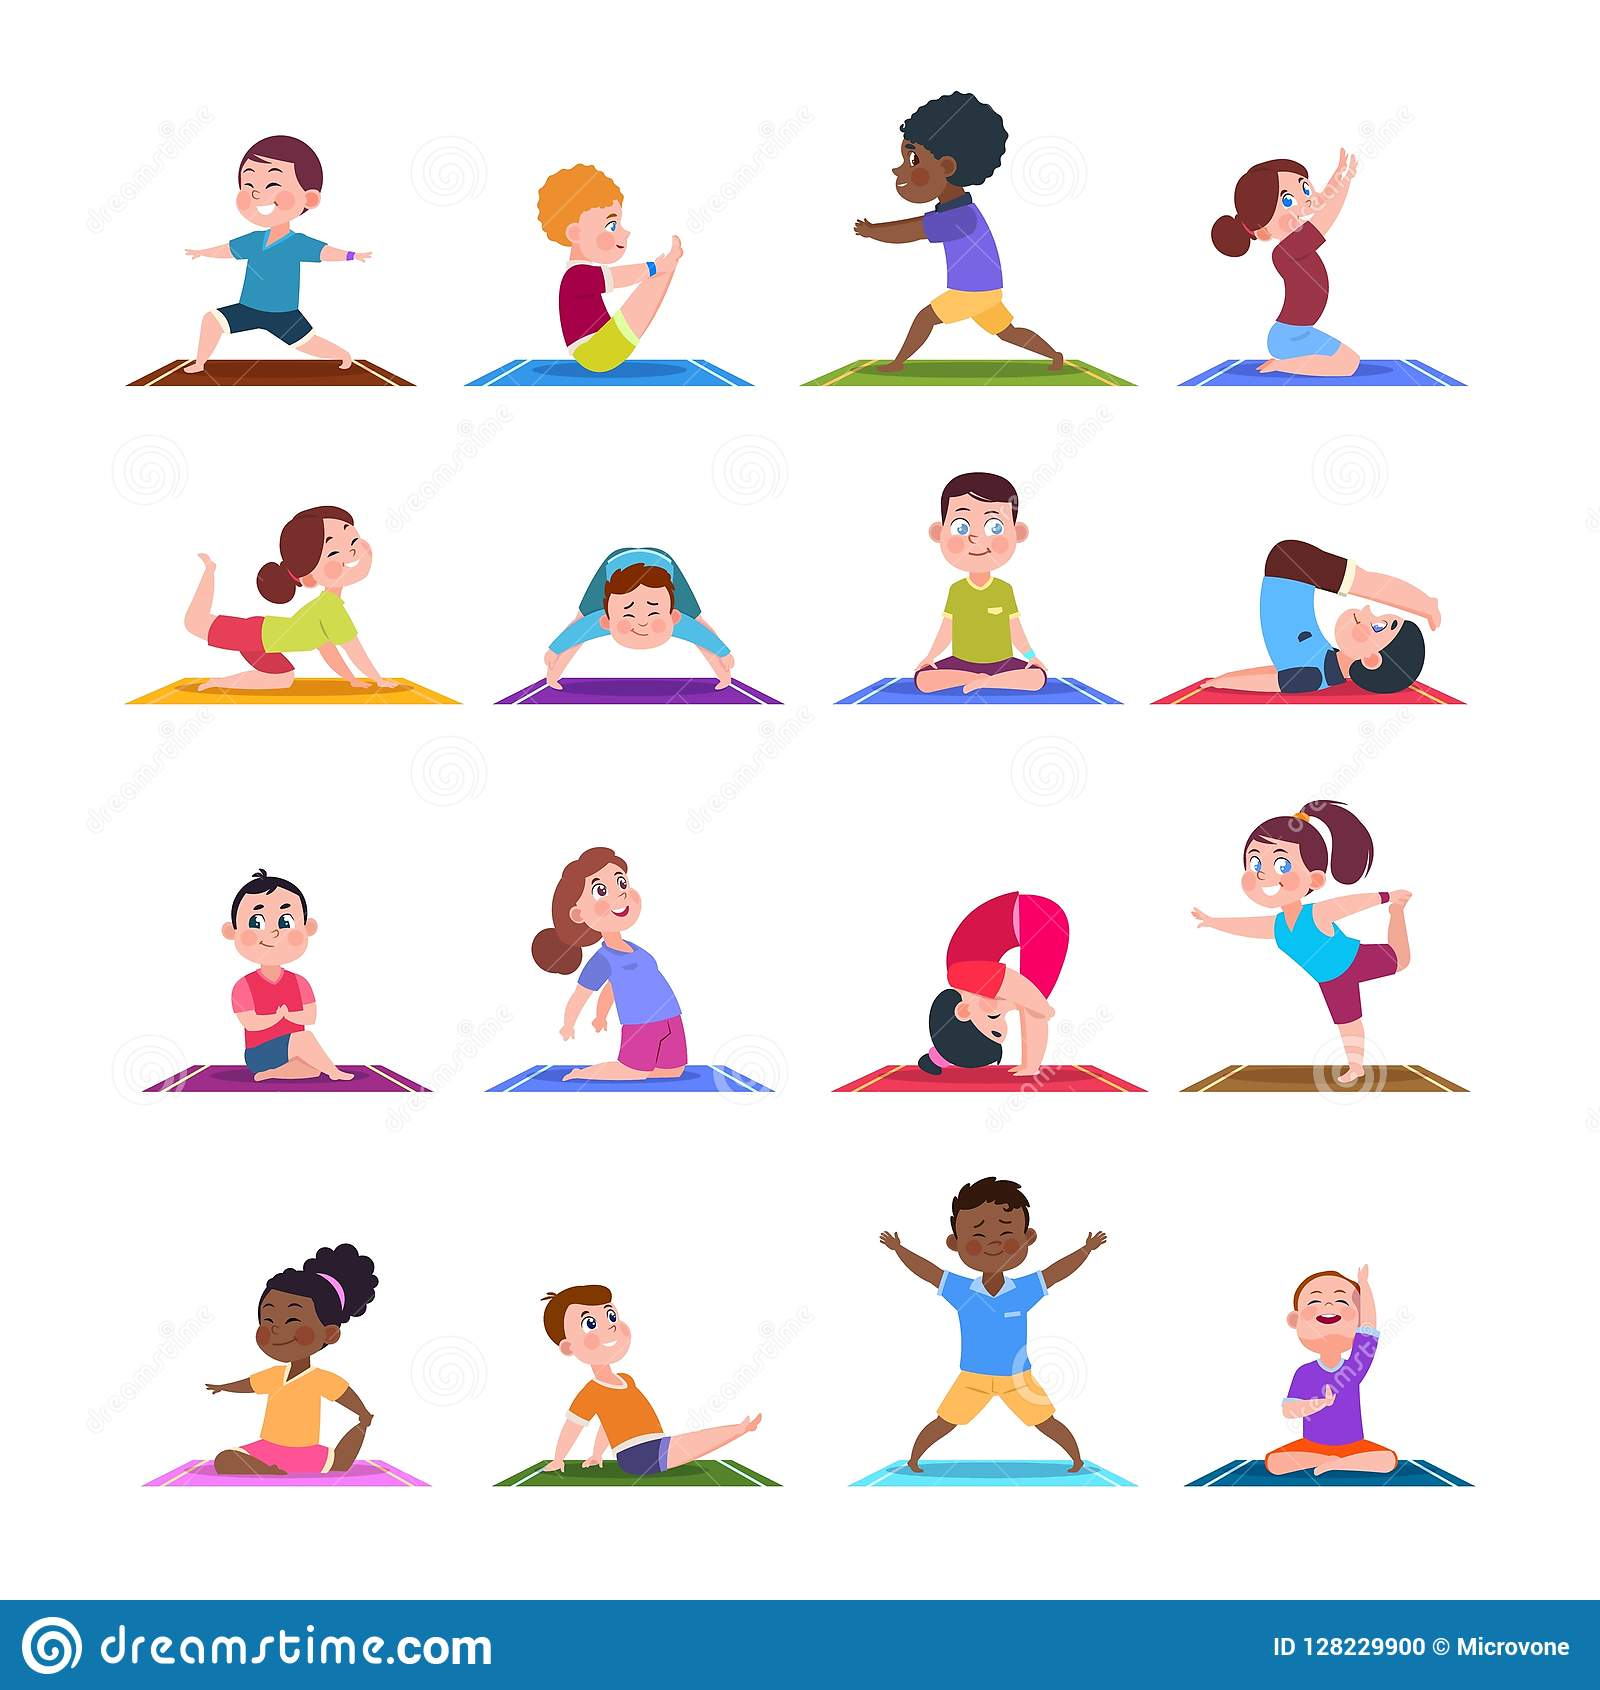 Children In Yoga Poses Cartoon Fitness Kids In Yoga Asana Vector Characters Isolated Set Stock Vector Illustration Of Female Clipart 128229900